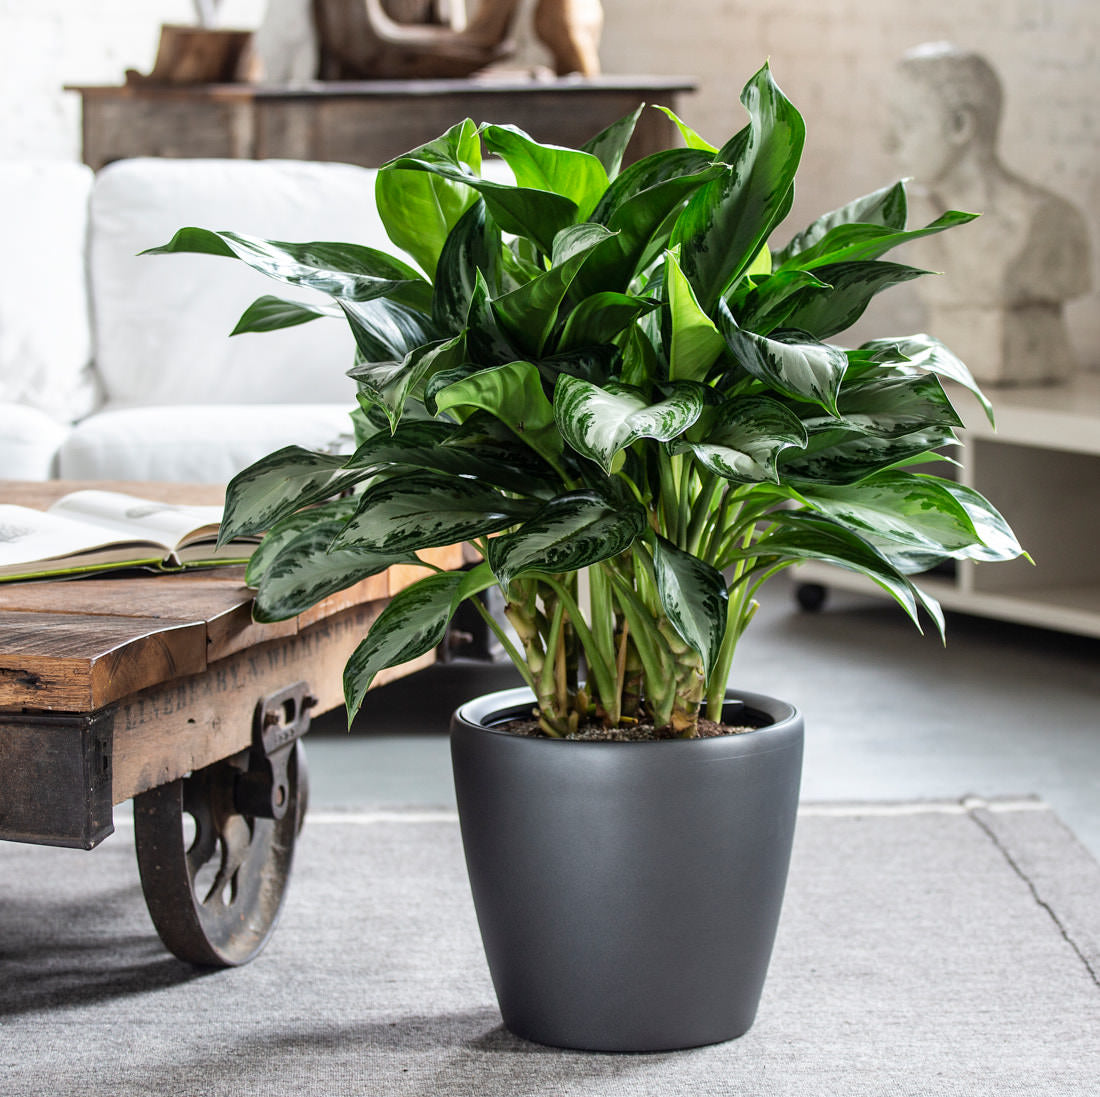 Aglaonema Plant | Round Classico Charcoal Planter | My City Plants